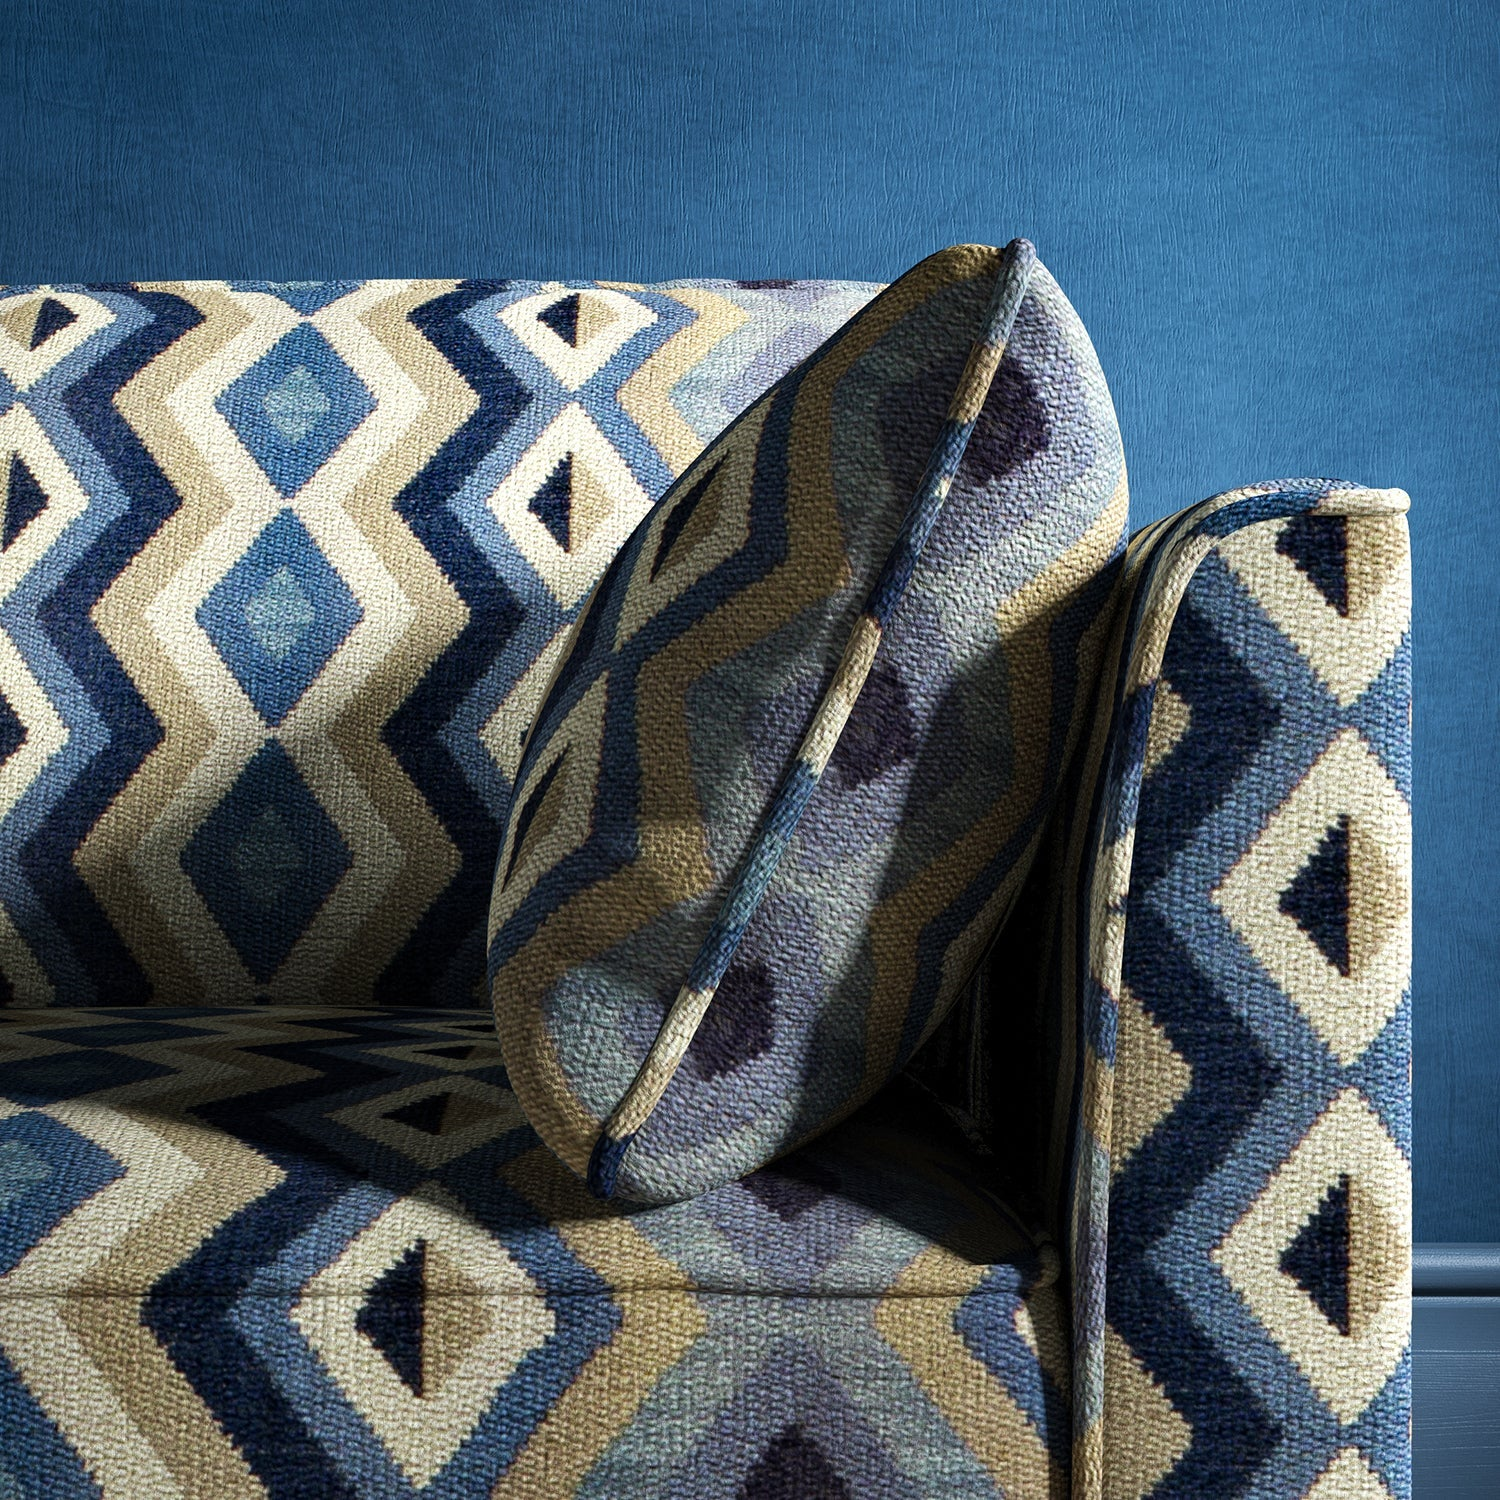 Sofa upholstered in a blue and neutral upholstery fabric with geometric Navajo inspired design